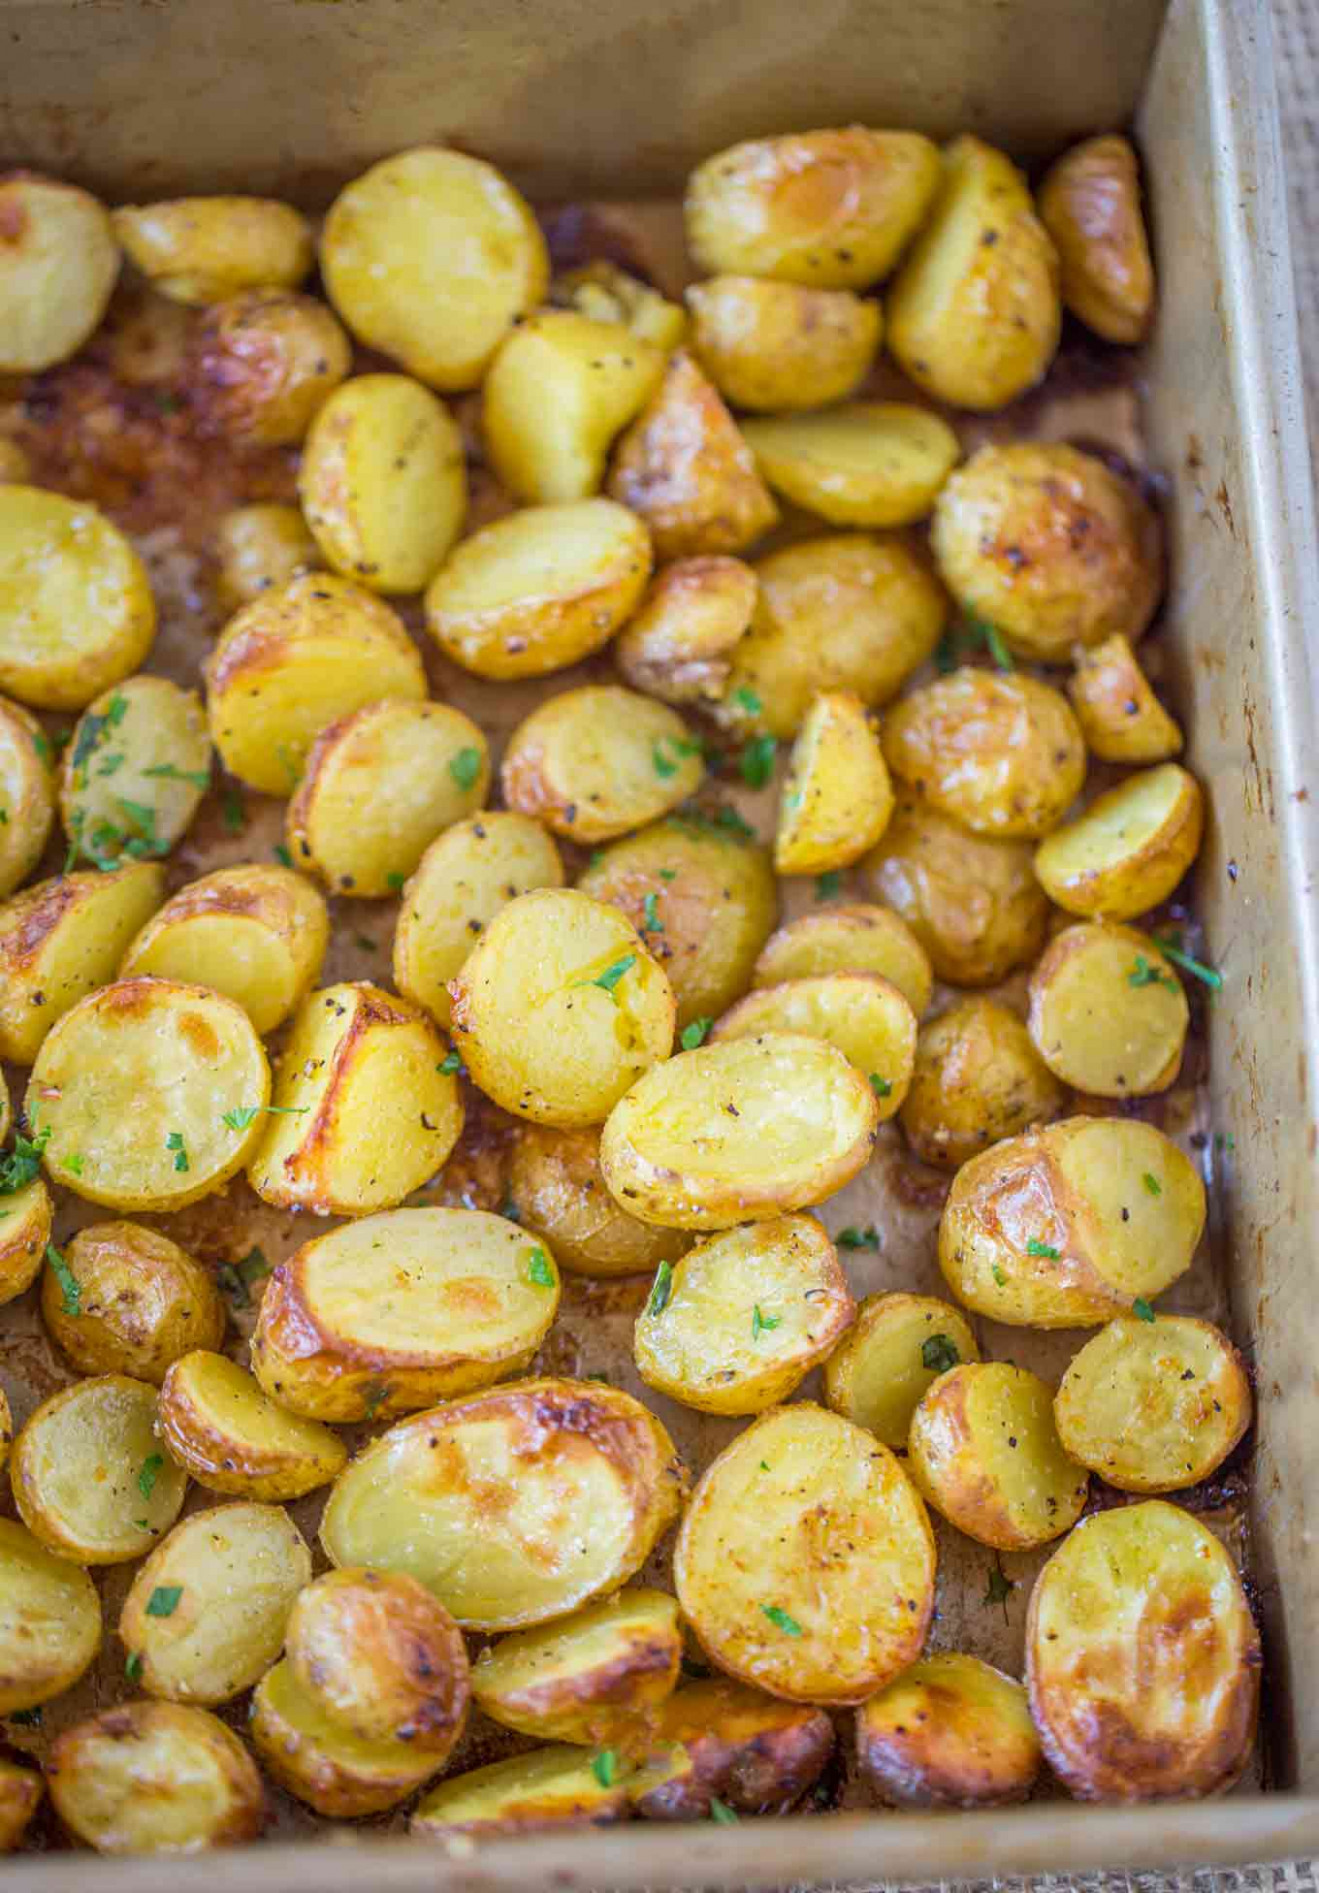 Rotisserie Chicken Roasted Potatoes - Recipes For Rotisserie Chicken